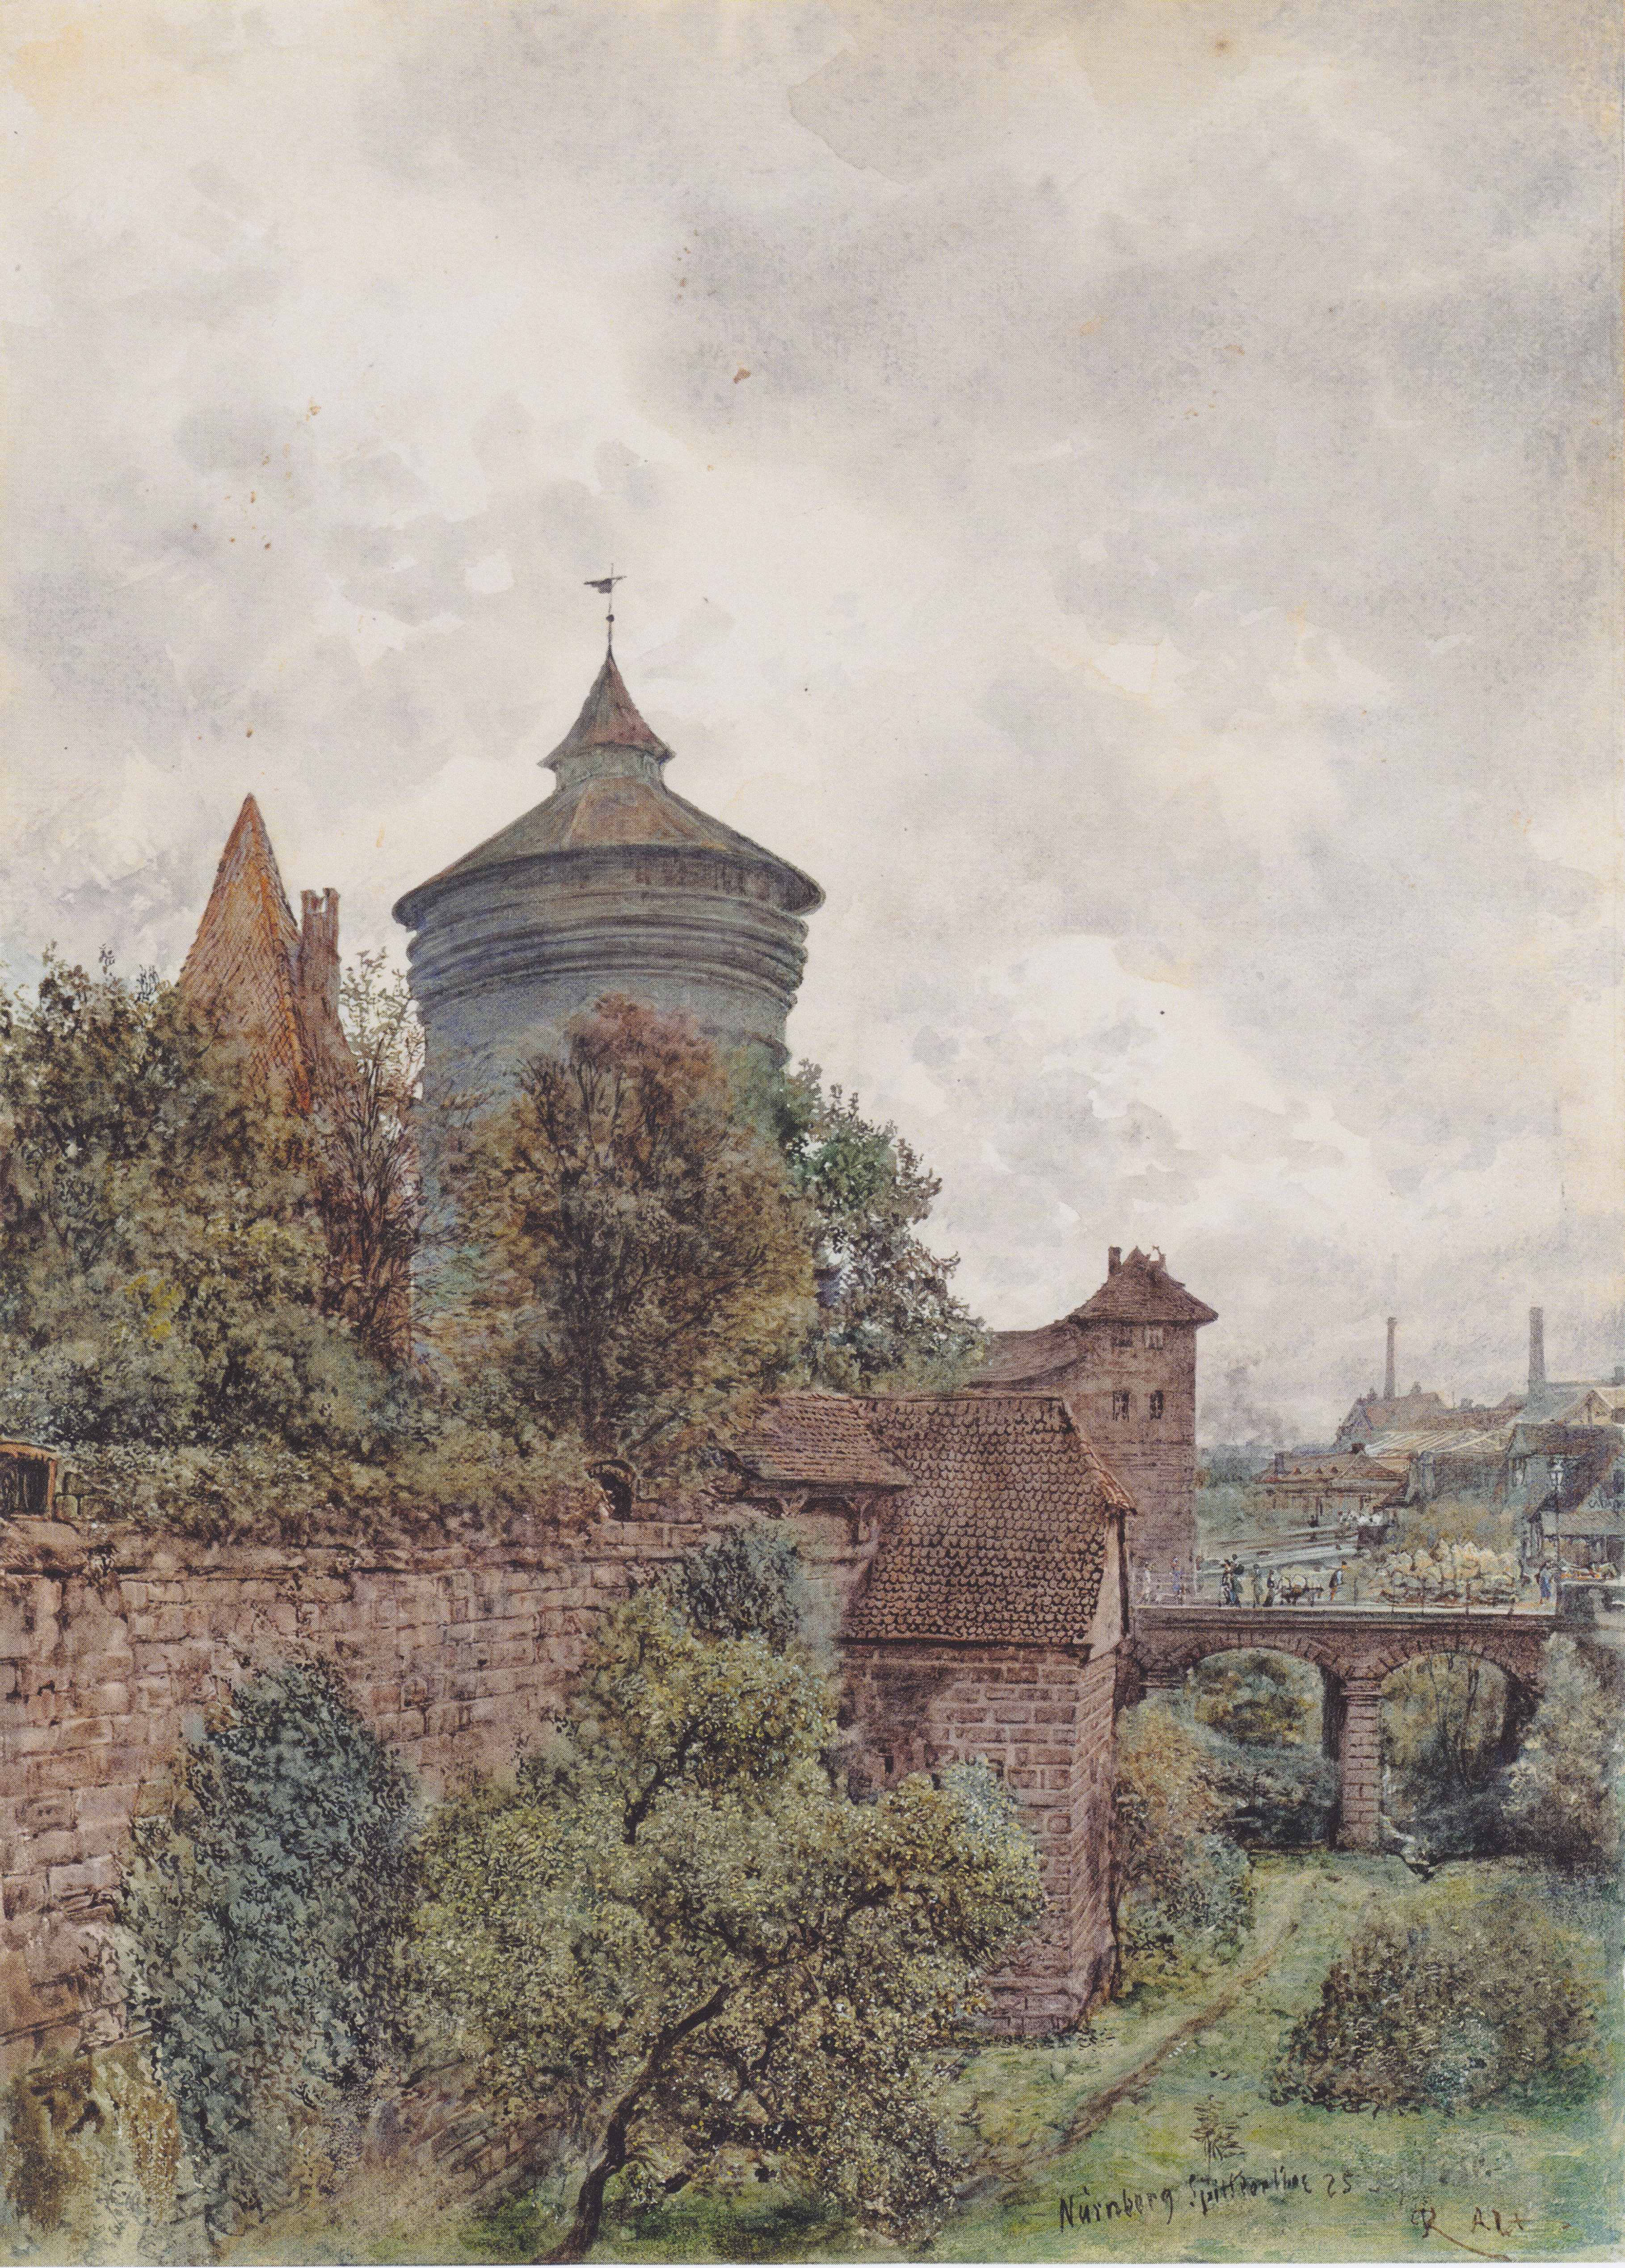 The Spittler in Nuremberg, 1856